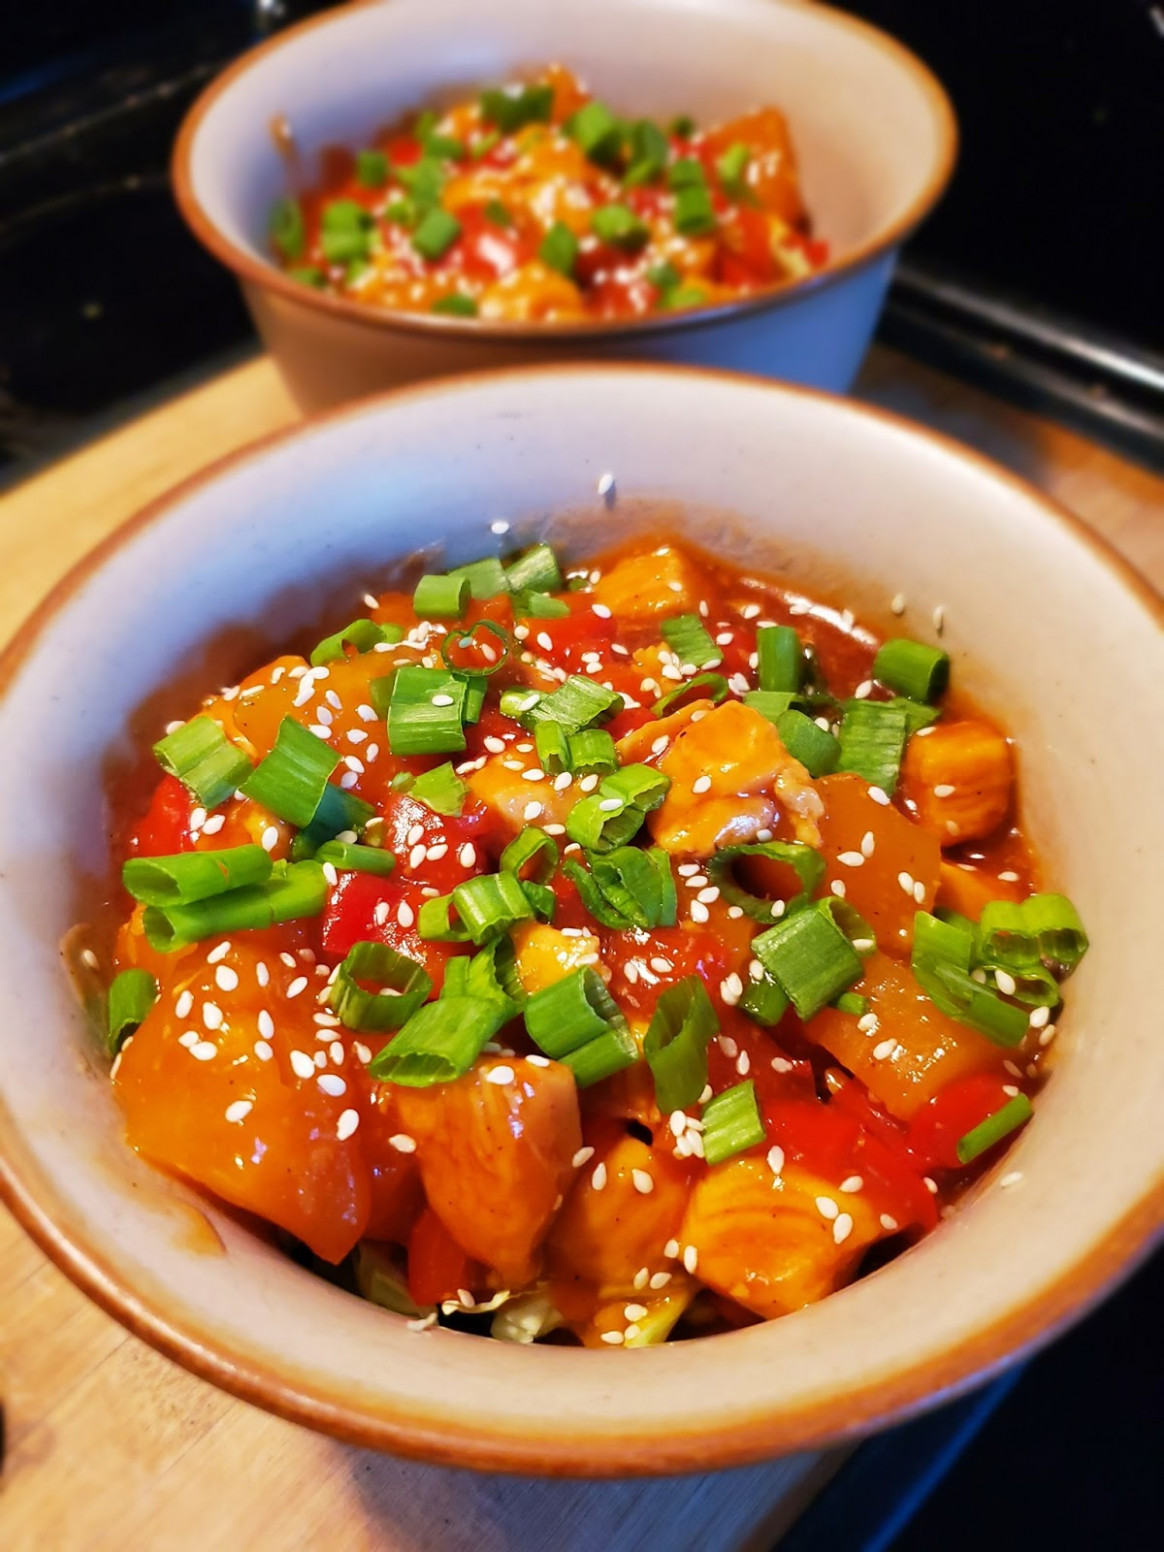 My Family's Wholesome Recipes: Low FODMAP Japanese Curry Rice - Low Fodmap Recipes Chicken